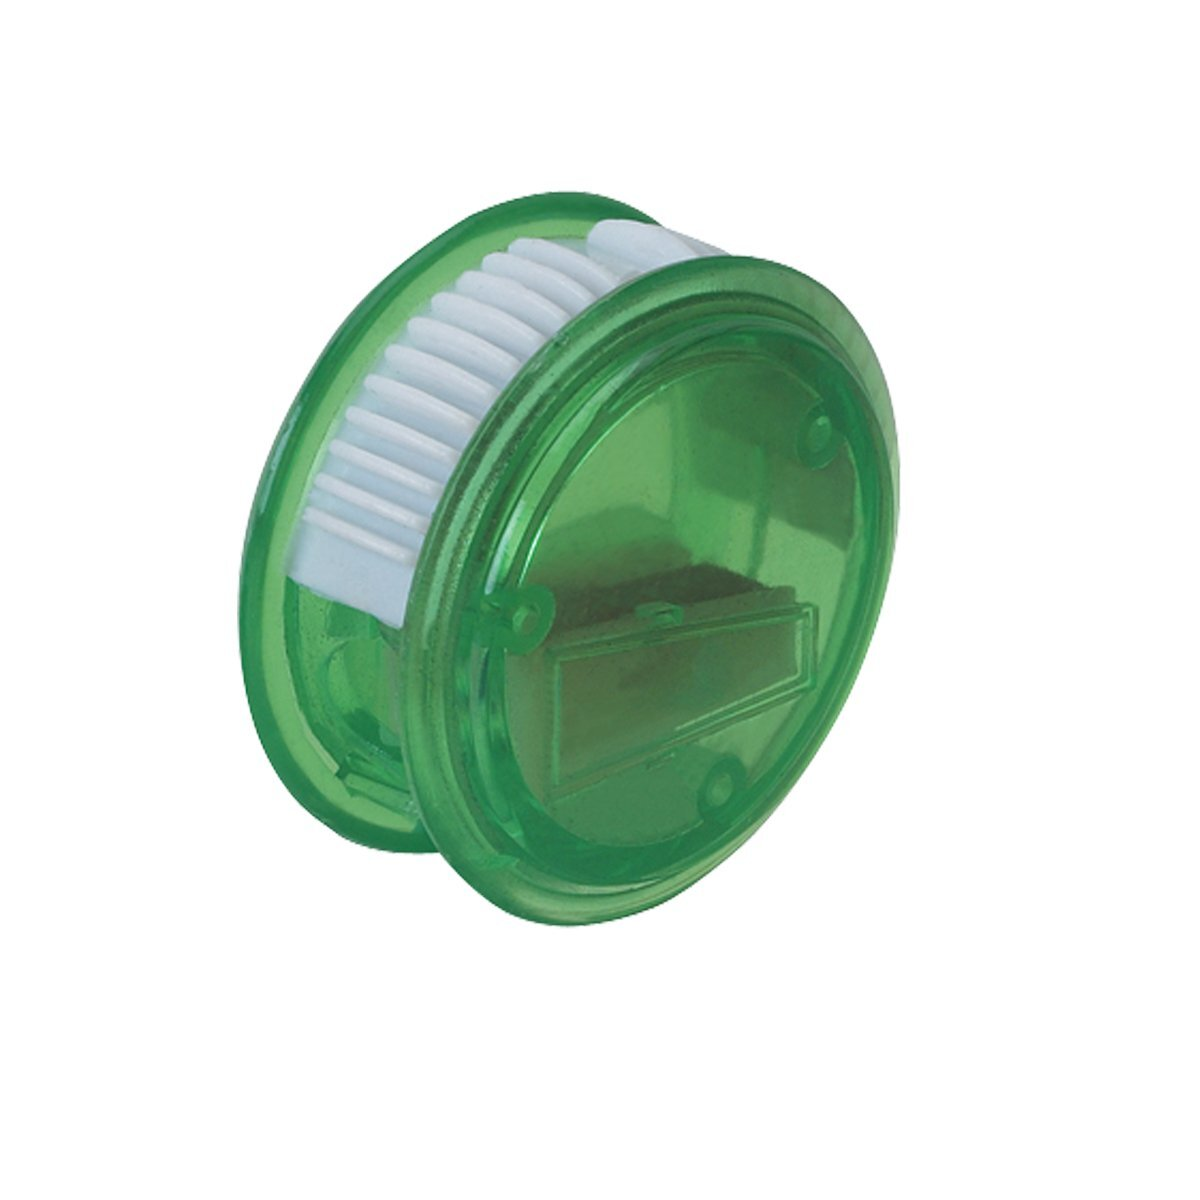 Circle Pencil Sharpener